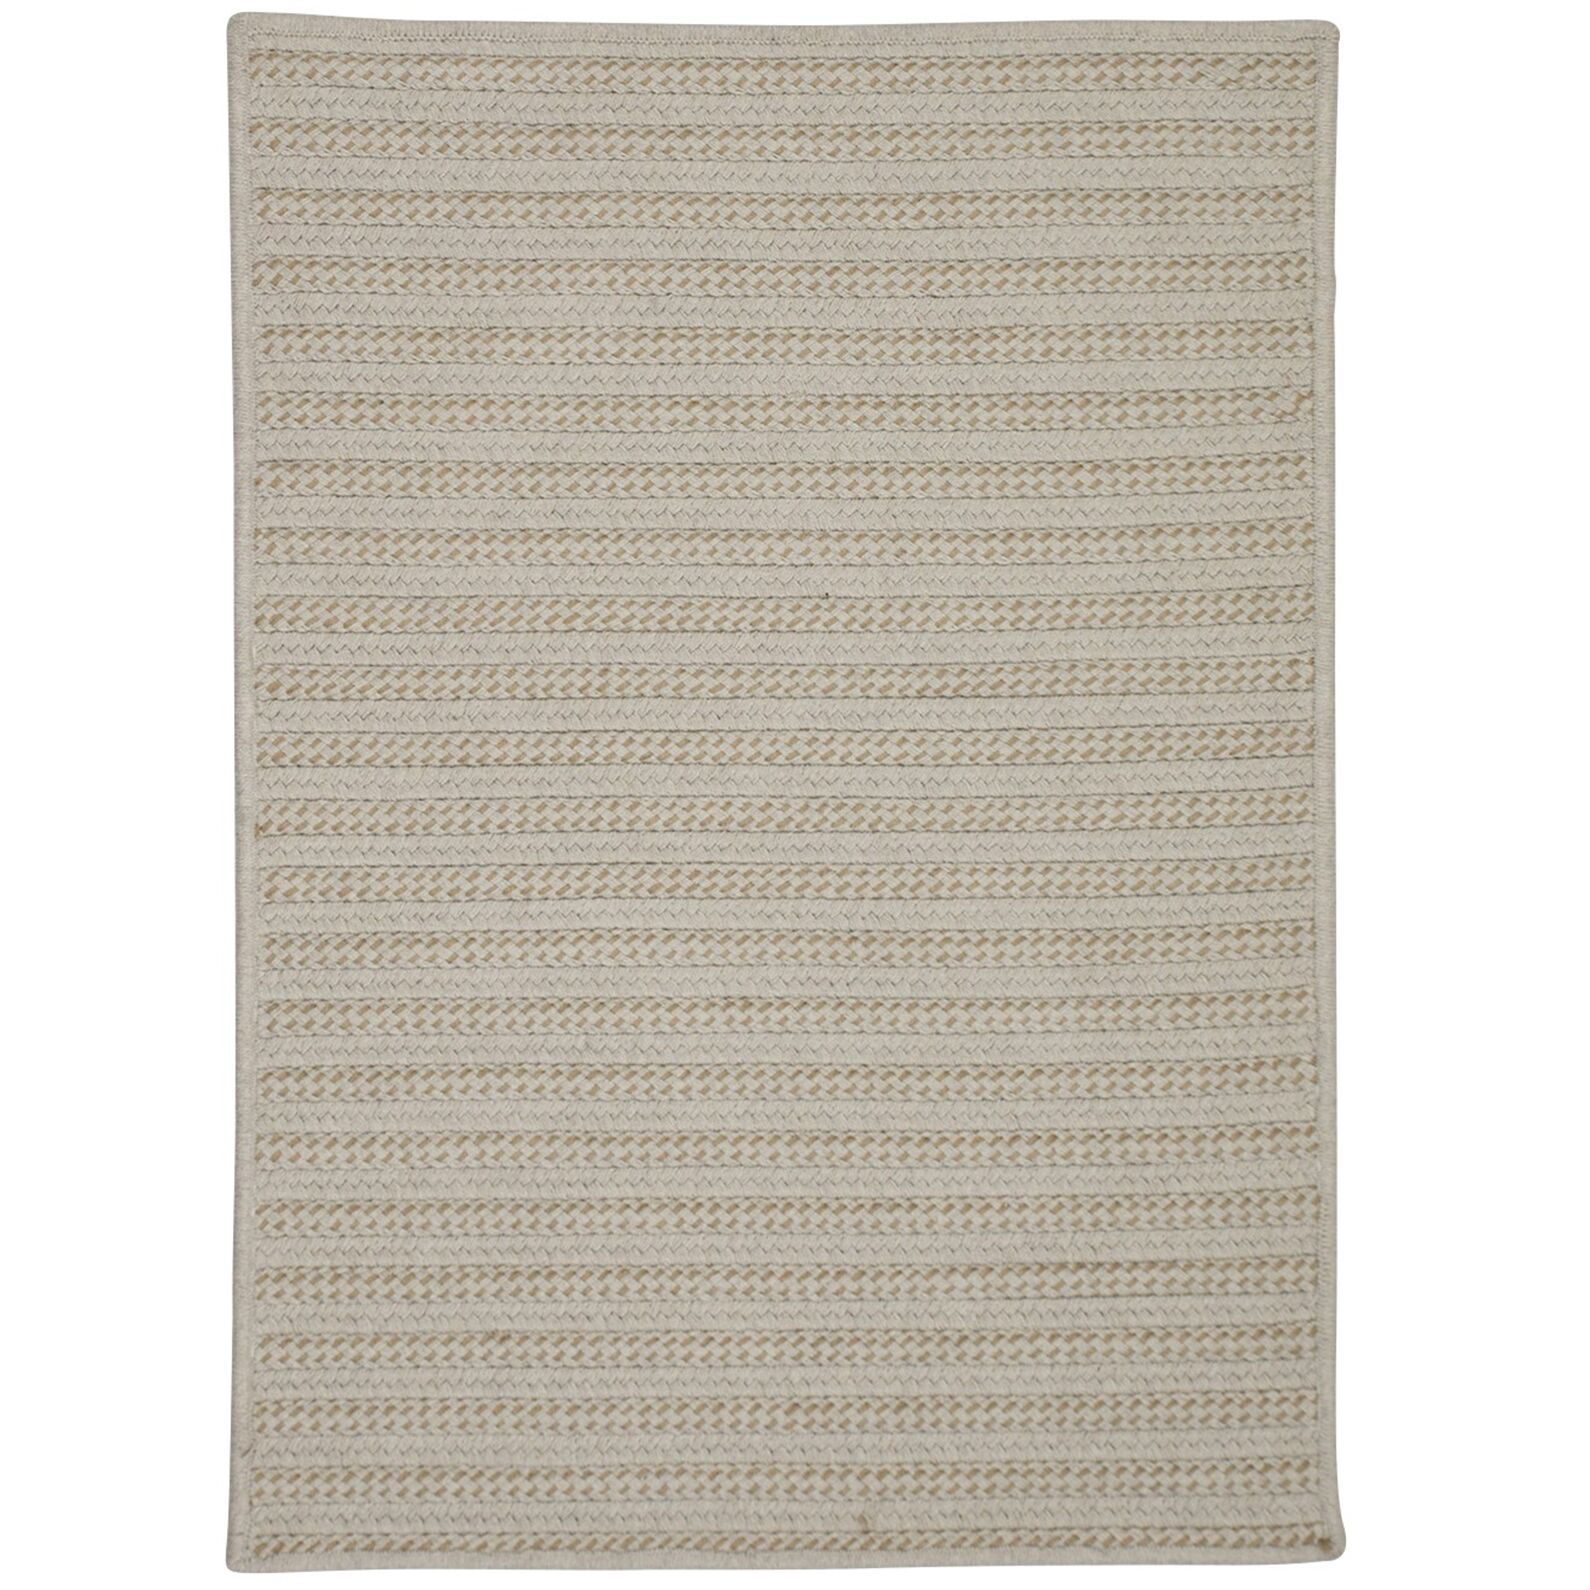 Tidewater Water Resistant Hand-Woven Natural Area Rug Rug Size: 5' x 7'